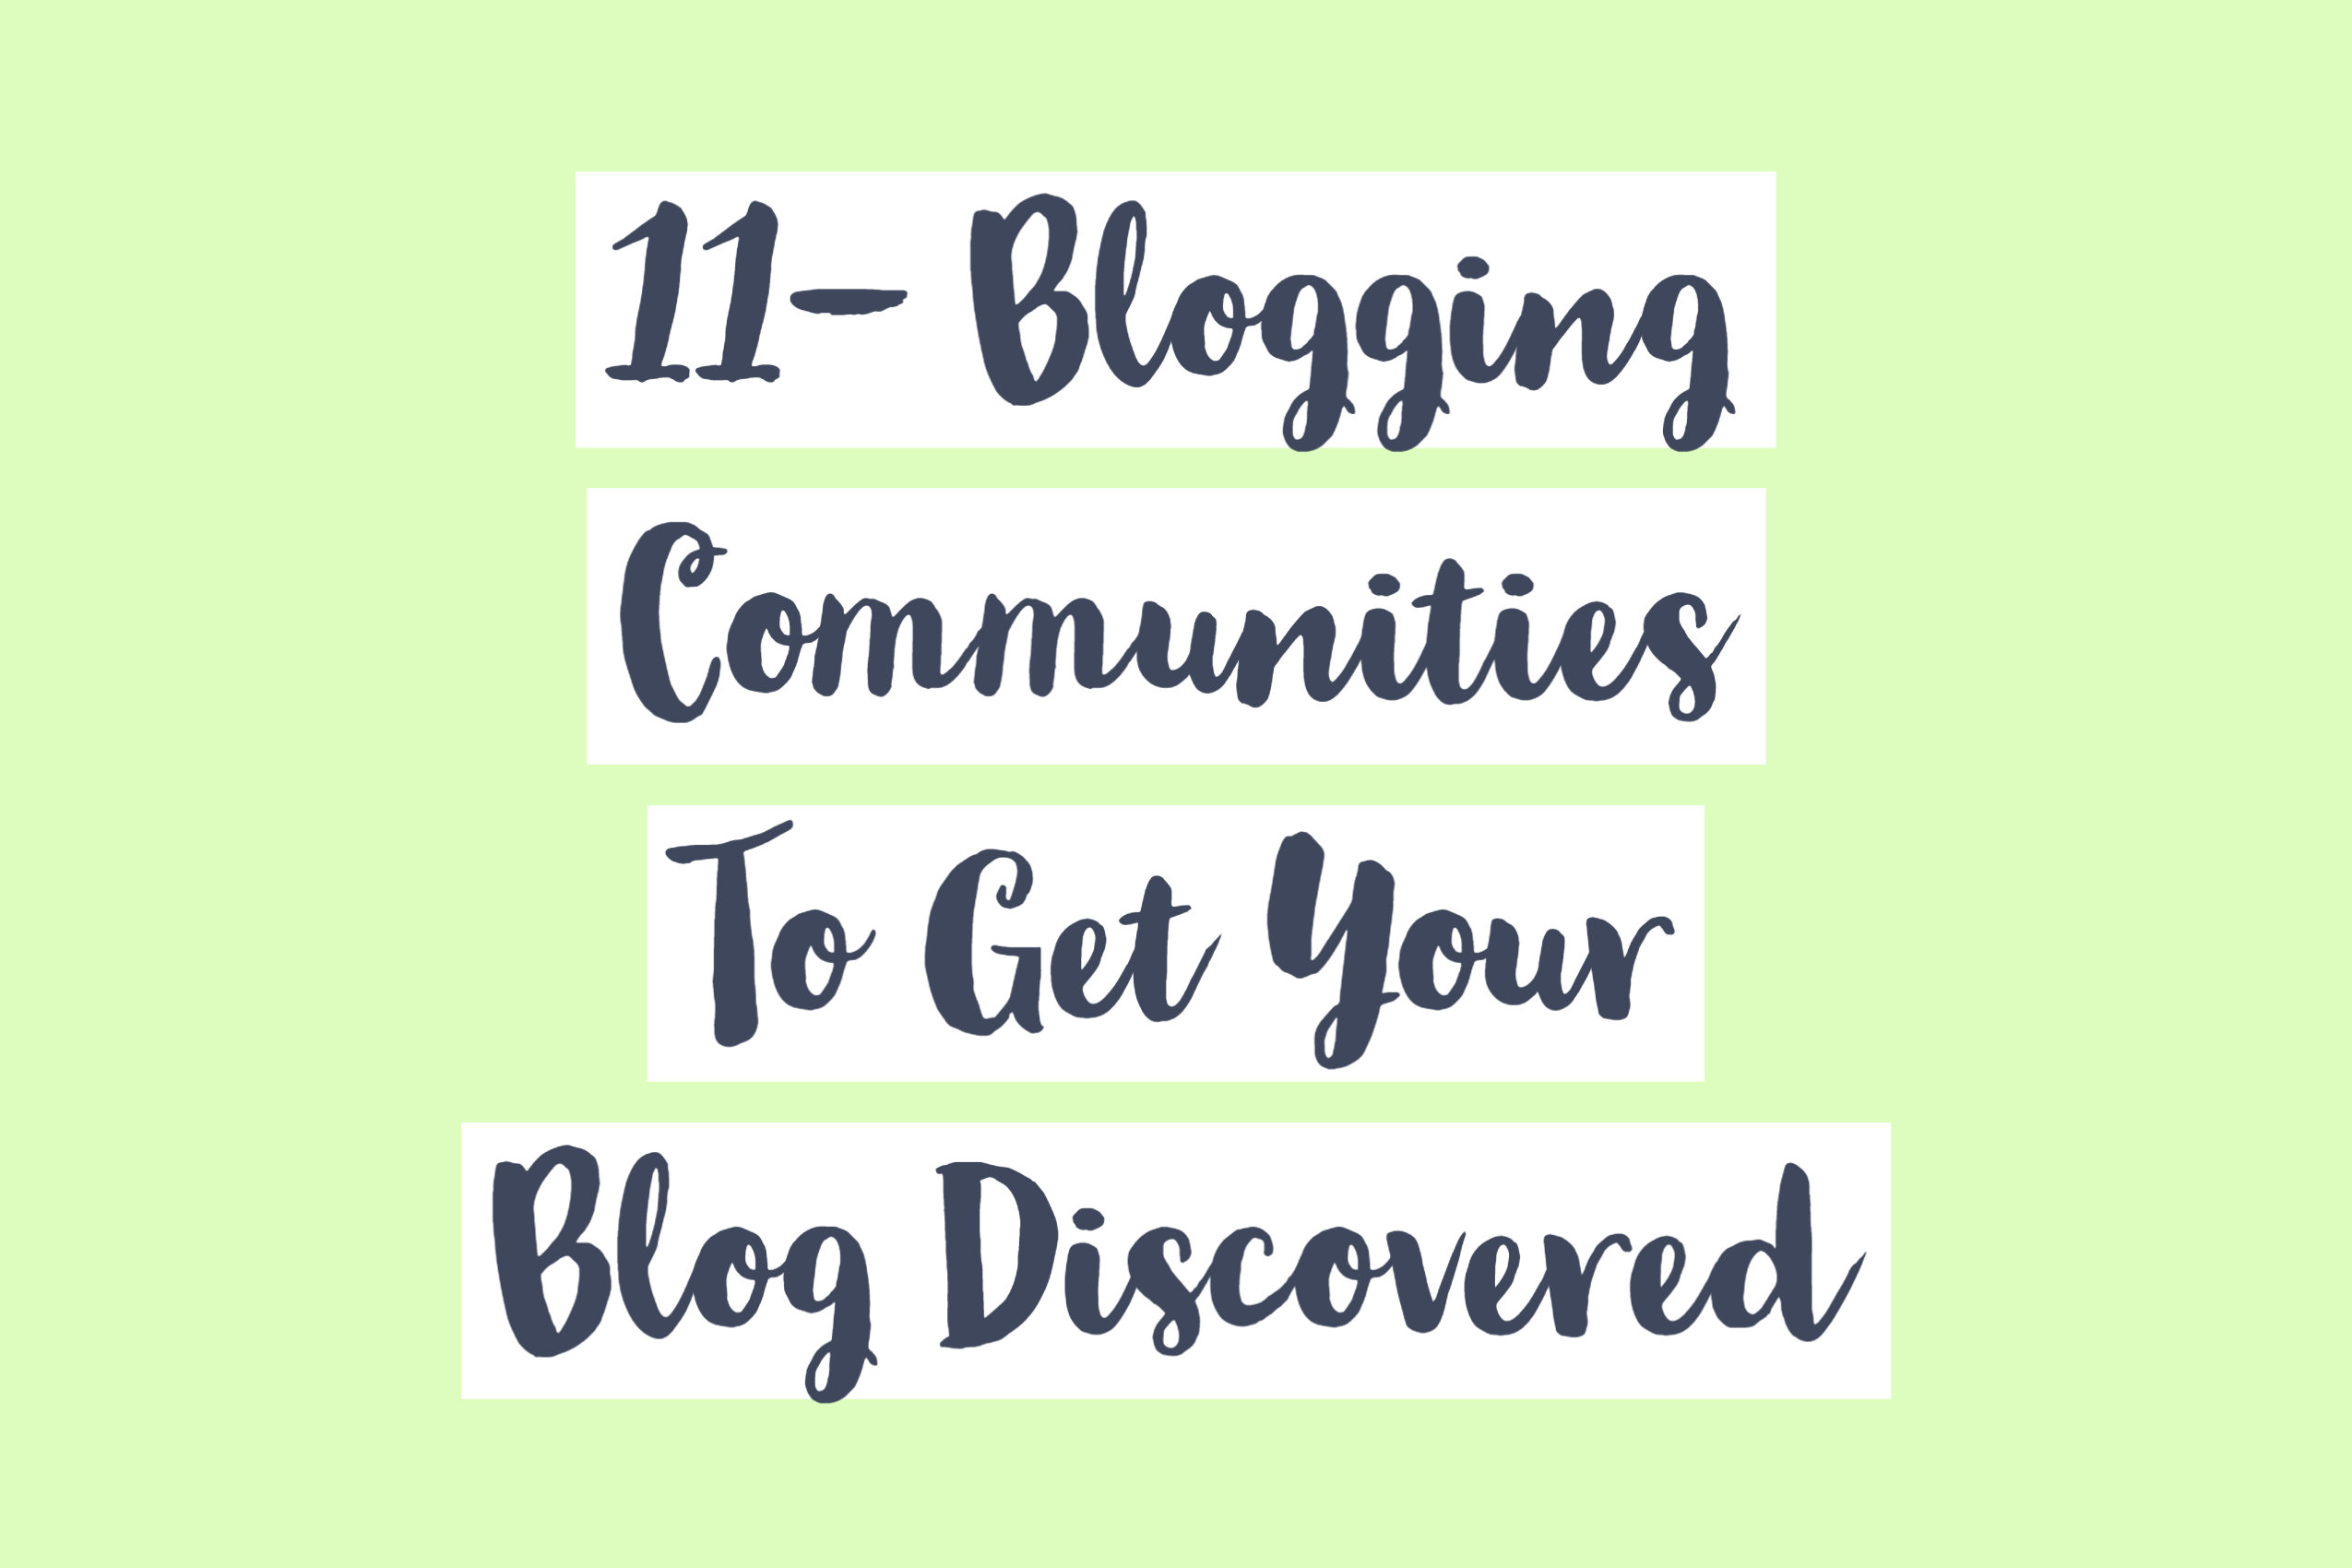 11 Blogging Communities To Get Your Blog Discovered